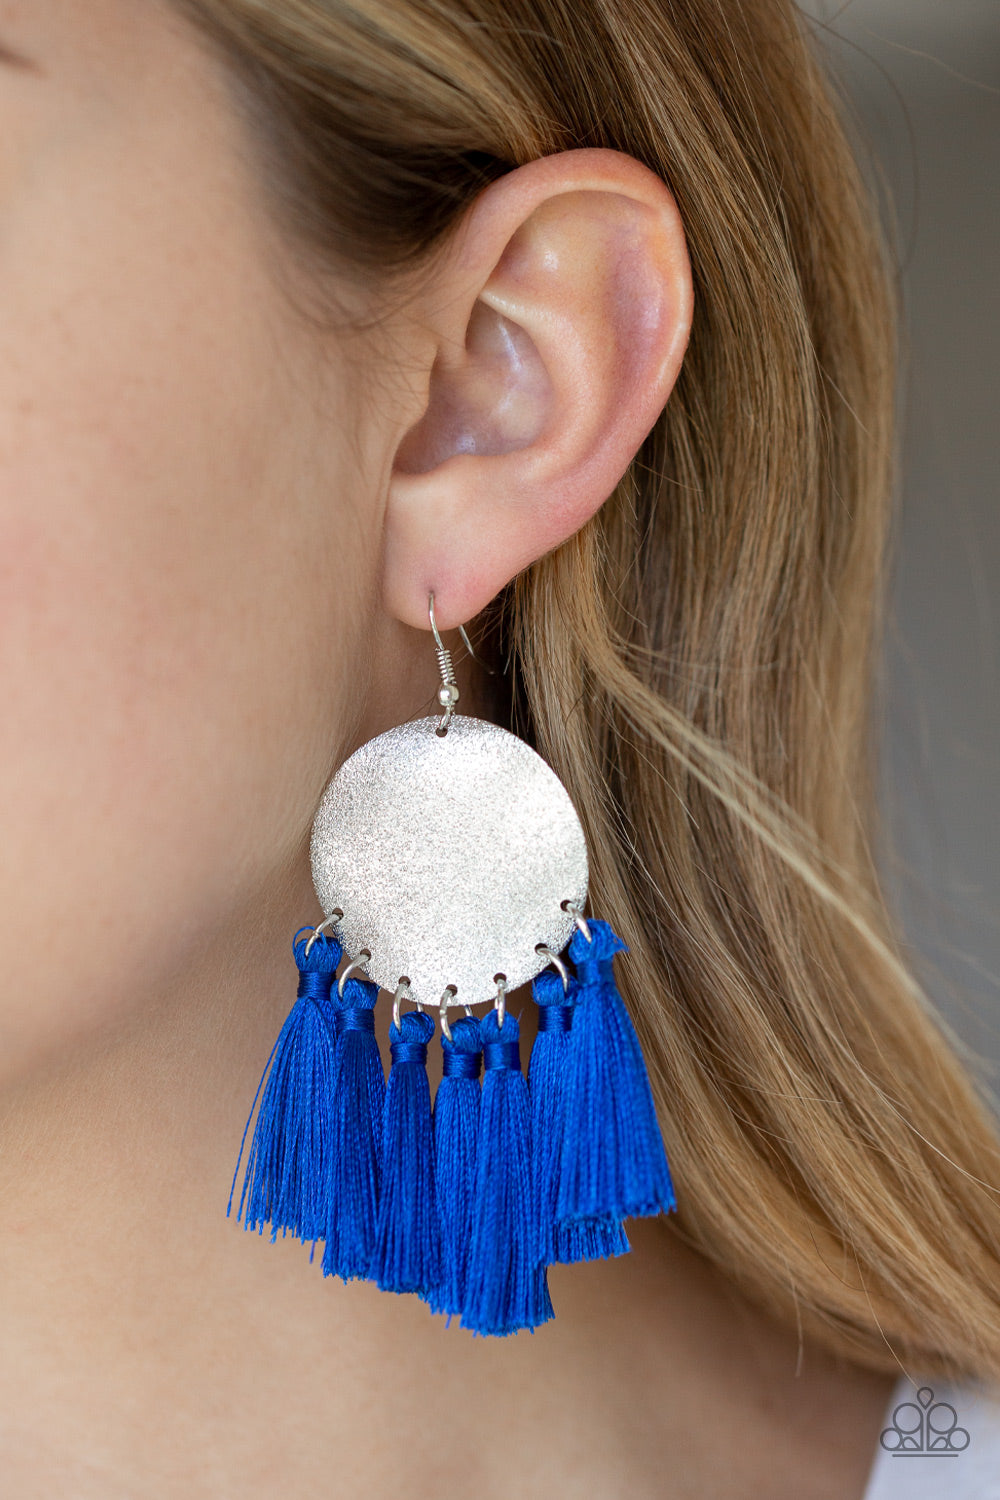 Paparazzi - Tassel Tribute - Blue Earrings - Classy Jewels by Linda